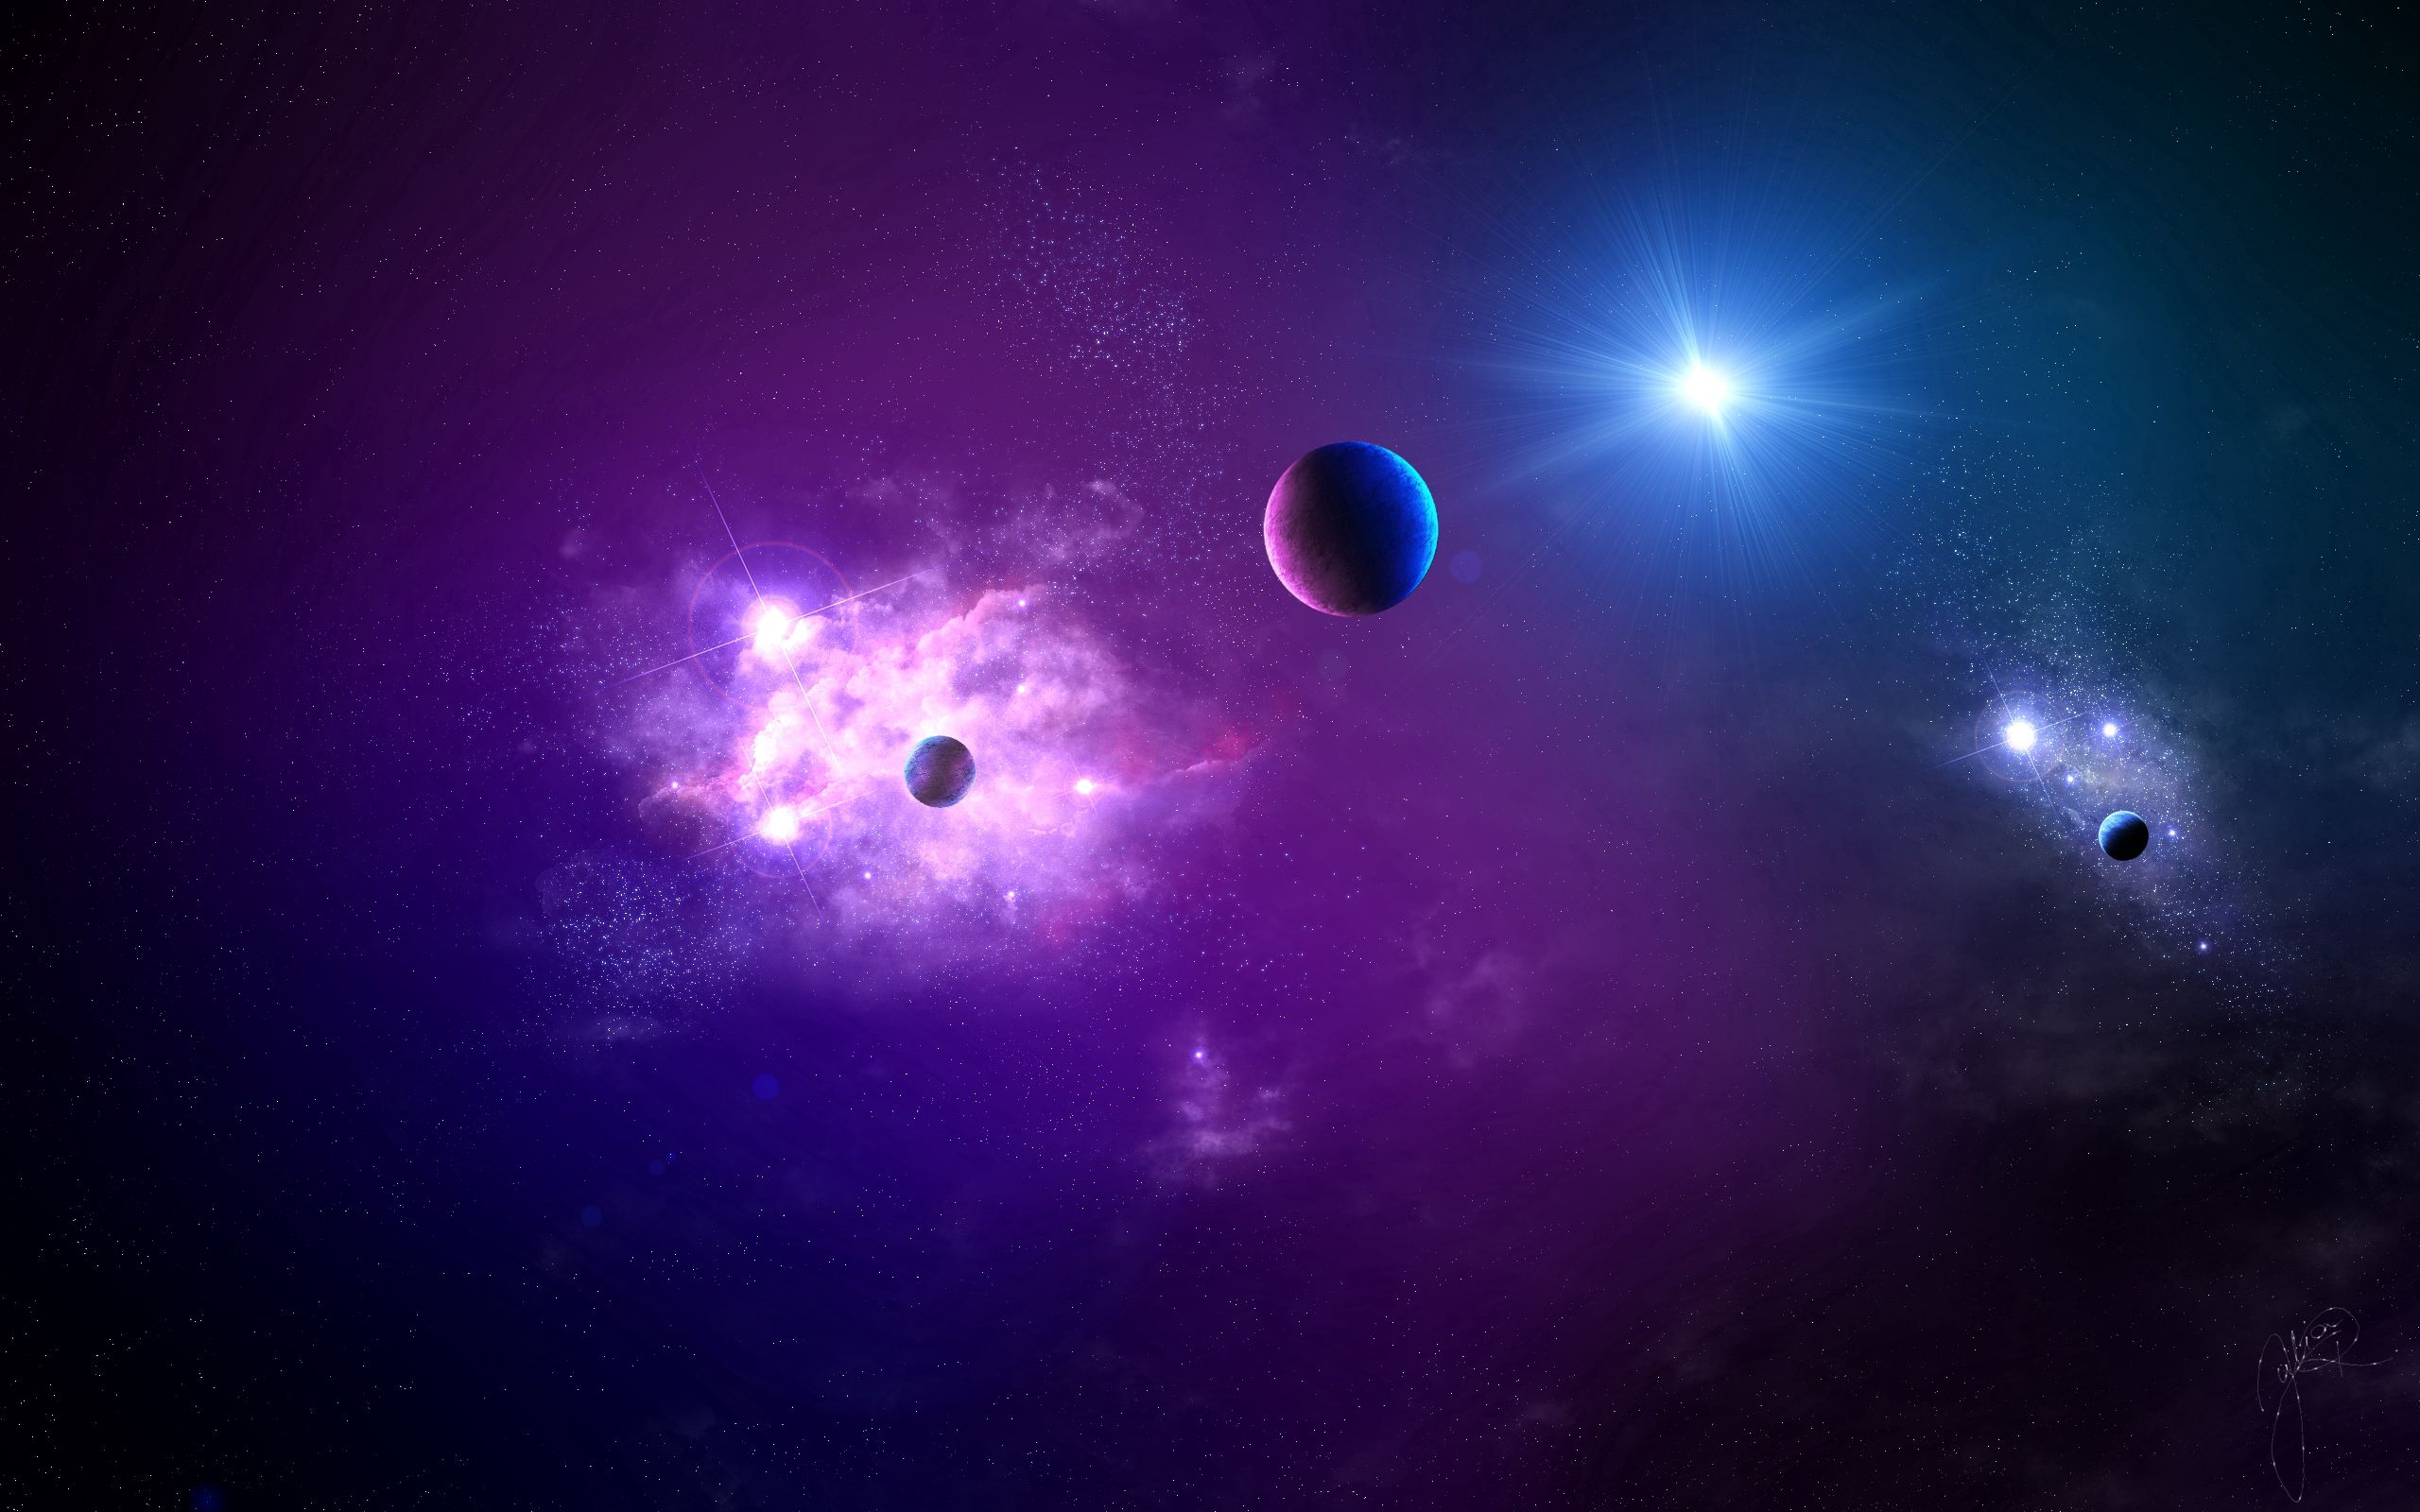 82727 download wallpaper Universe, Planet, Shine, Light, Galaxy screensavers and pictures for free